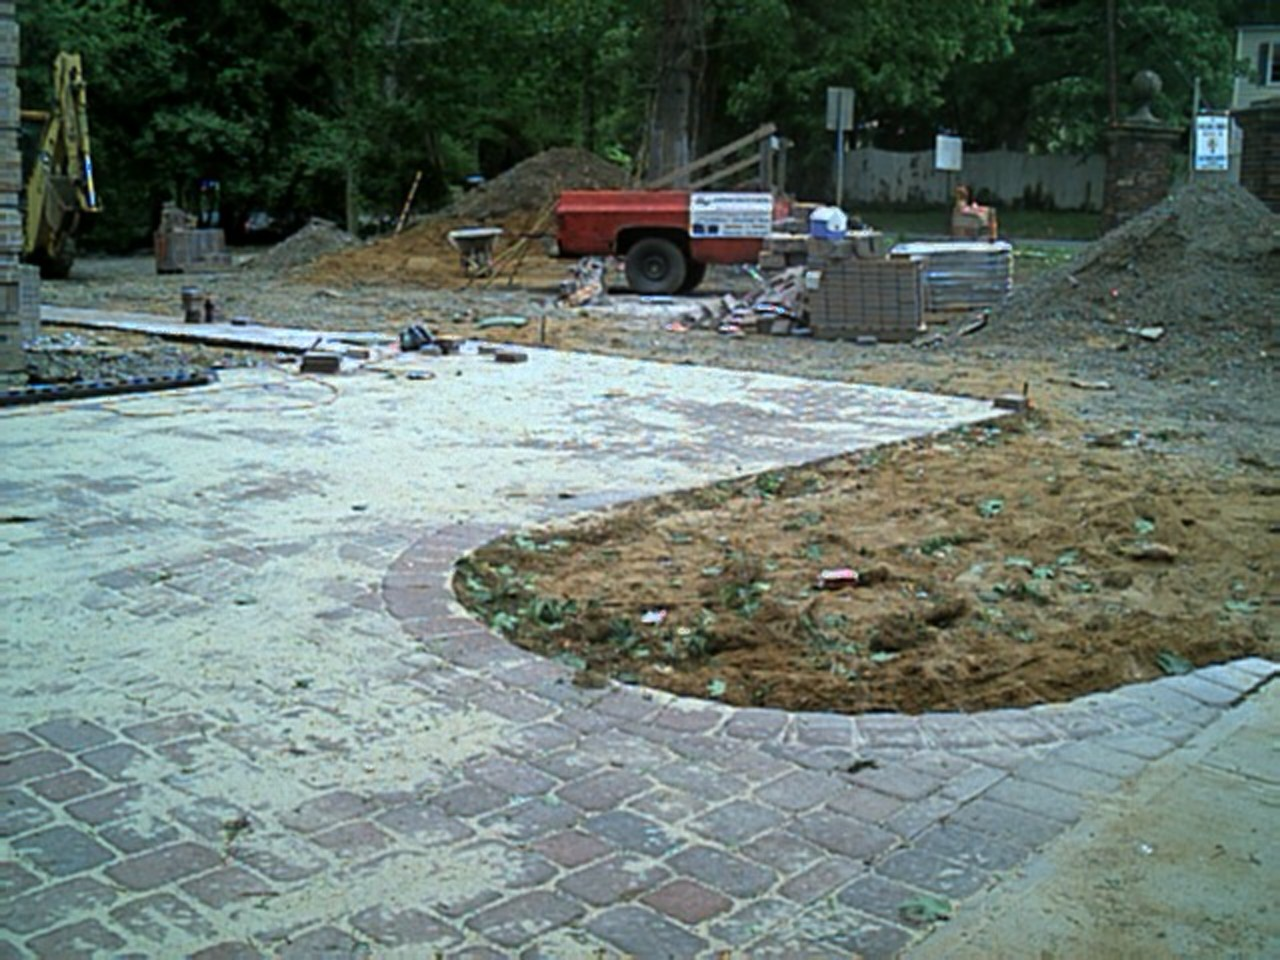 From the main entrance, the brick pavers curve into a parking section